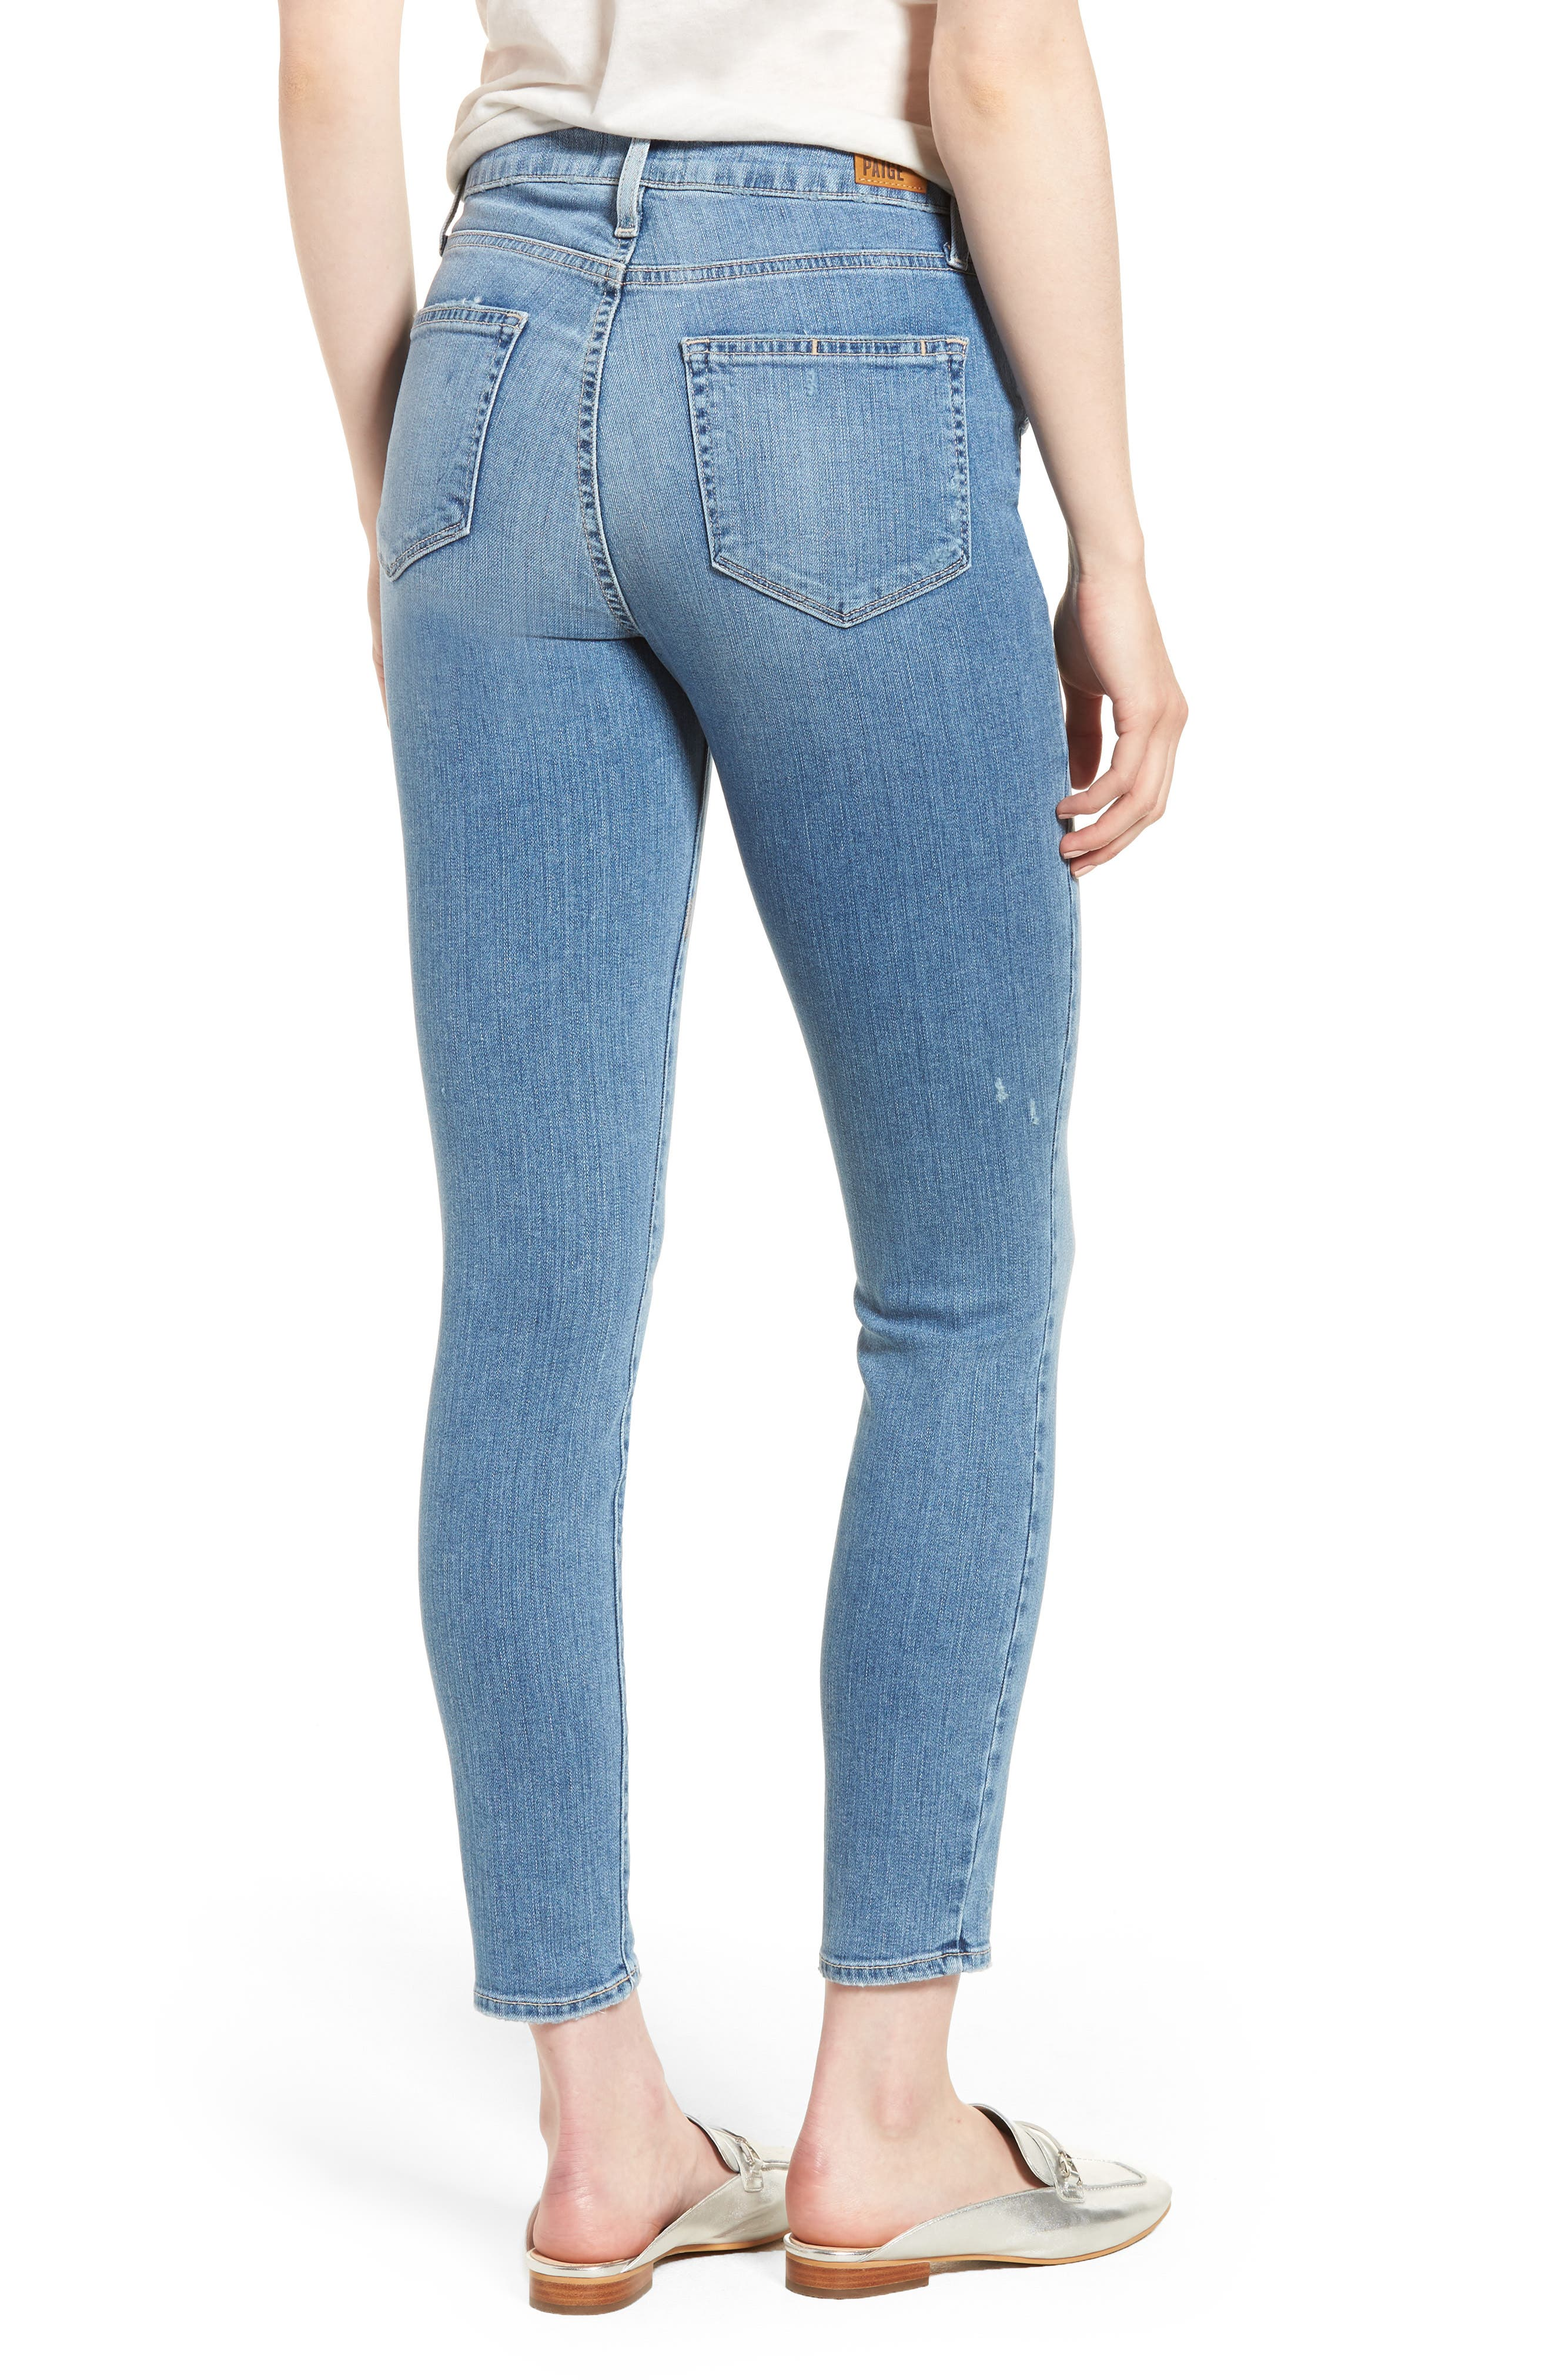 Hoxton Distressed Ankle Jeans,                             Alternate thumbnail 2, color,                             Soto